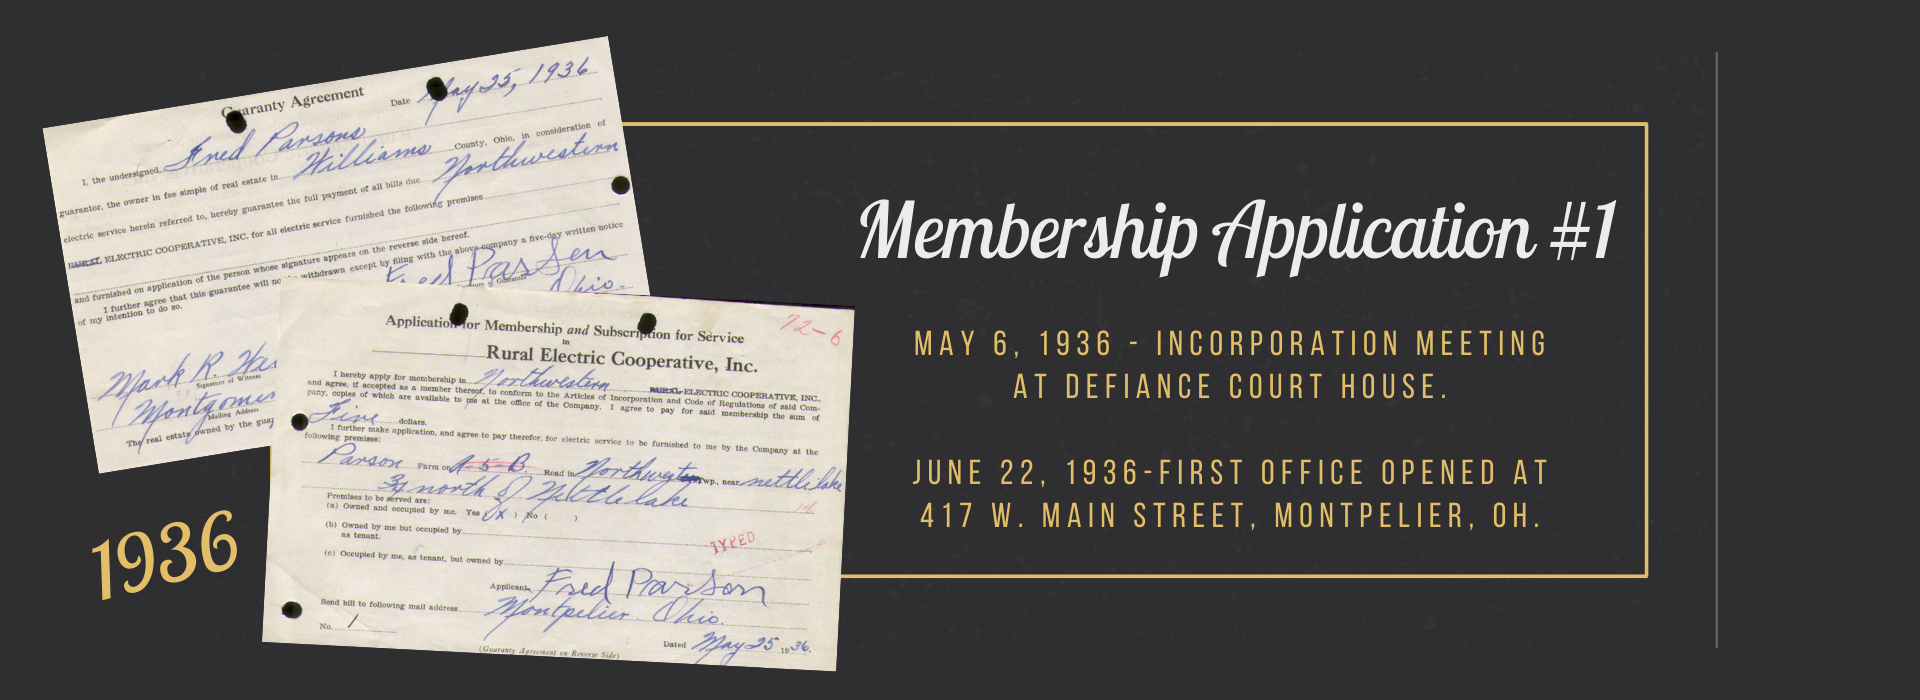 Membership Application #1